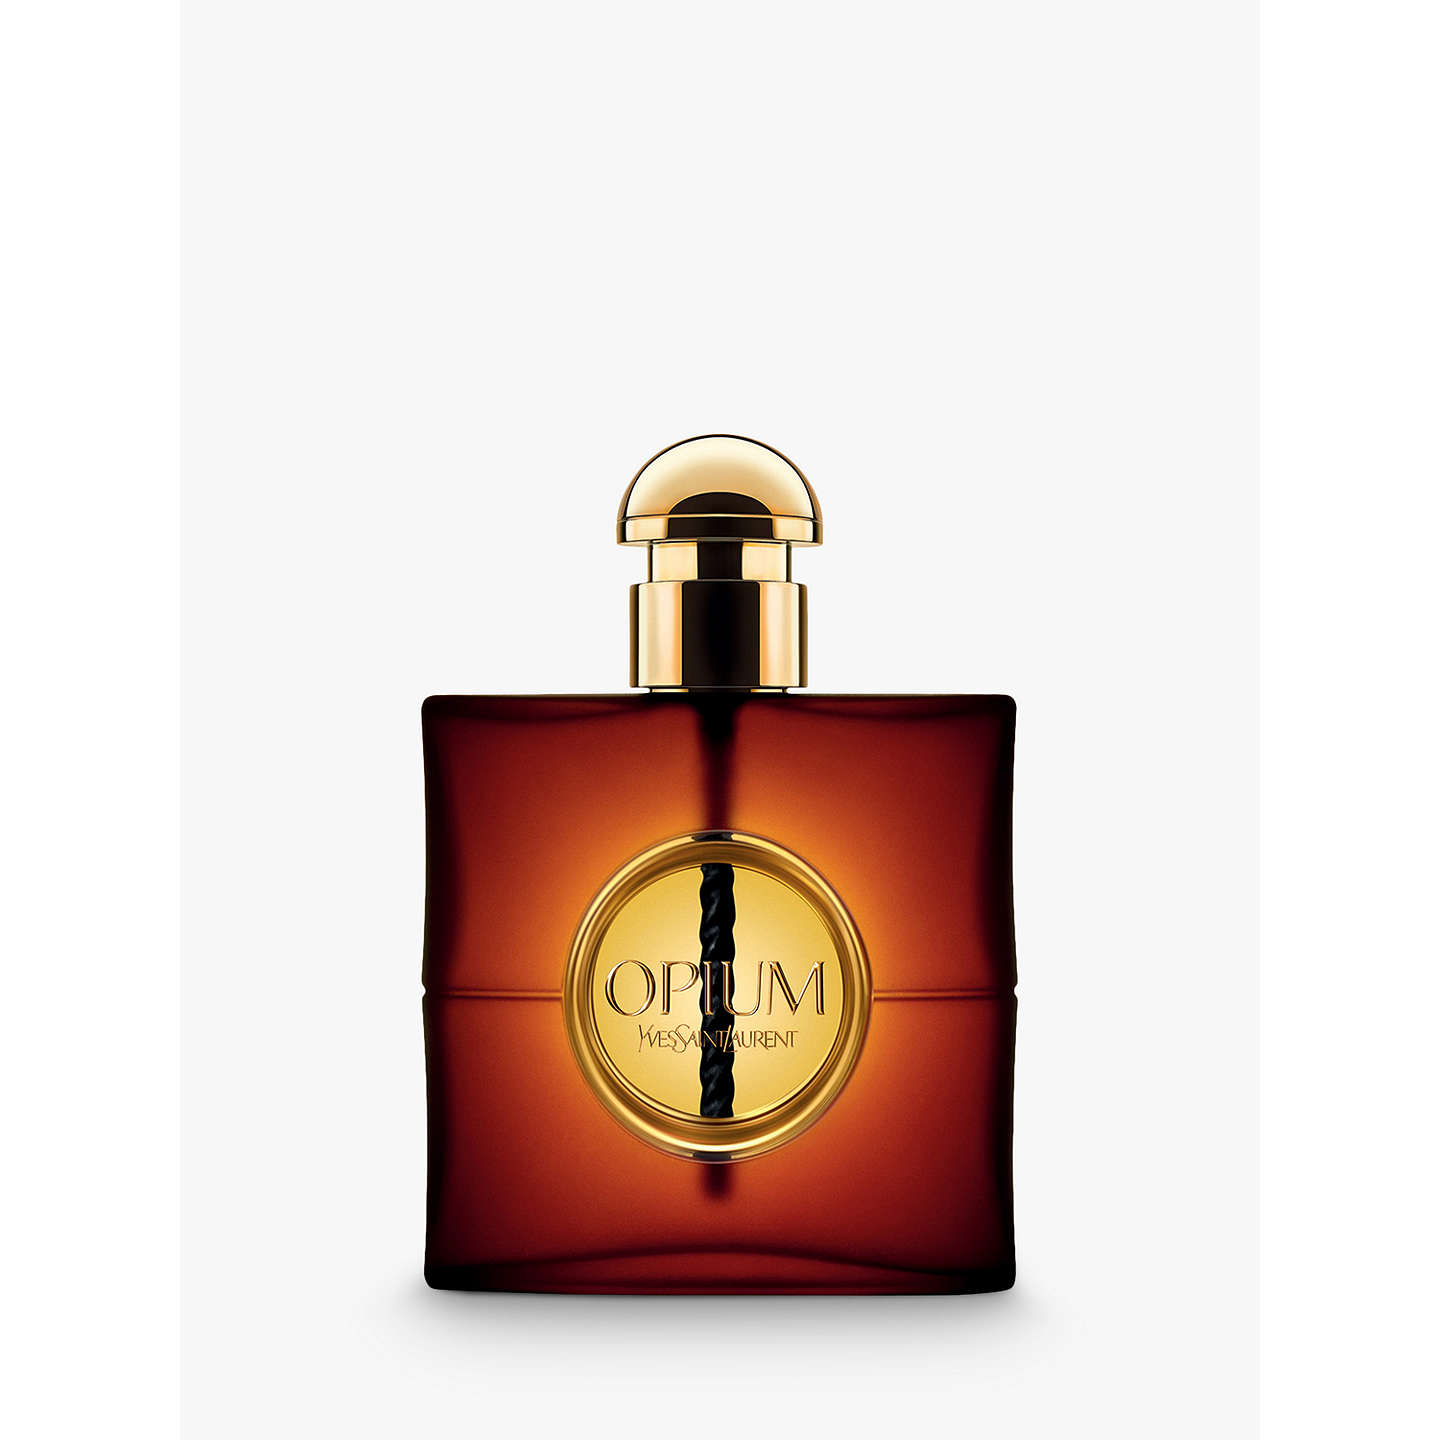 BuyYves Saint Laurent Opium Eau de Parfum, 30ml Online at johnlewis.com